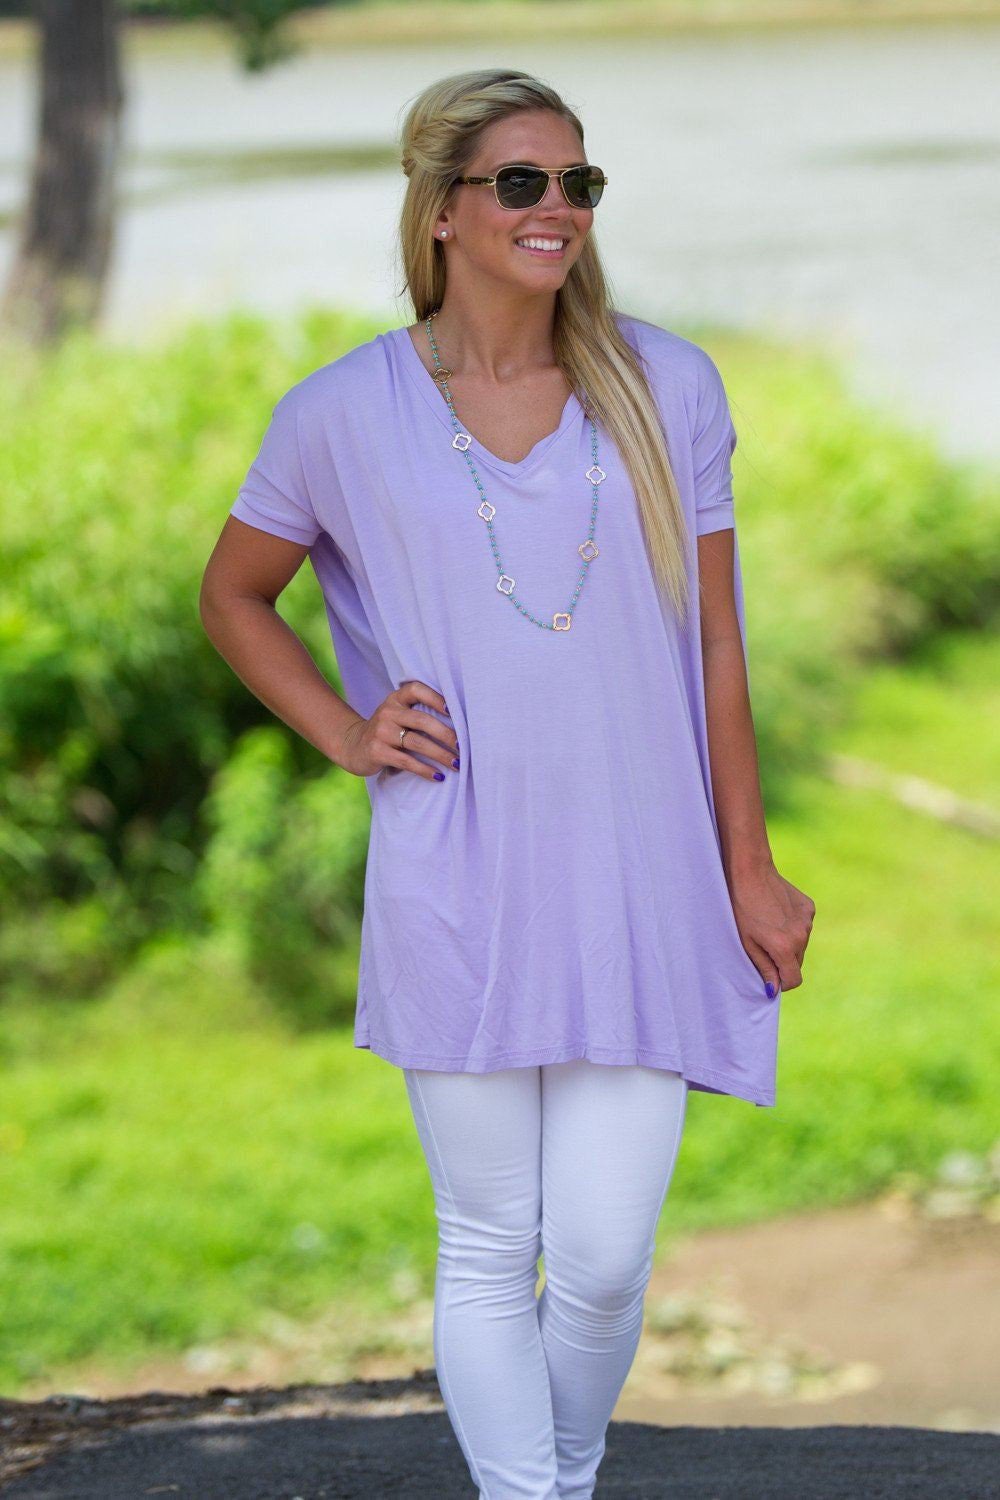 Short Sleeve V-Neck Piko Tunic - Lilac - Piko Clothing - 1